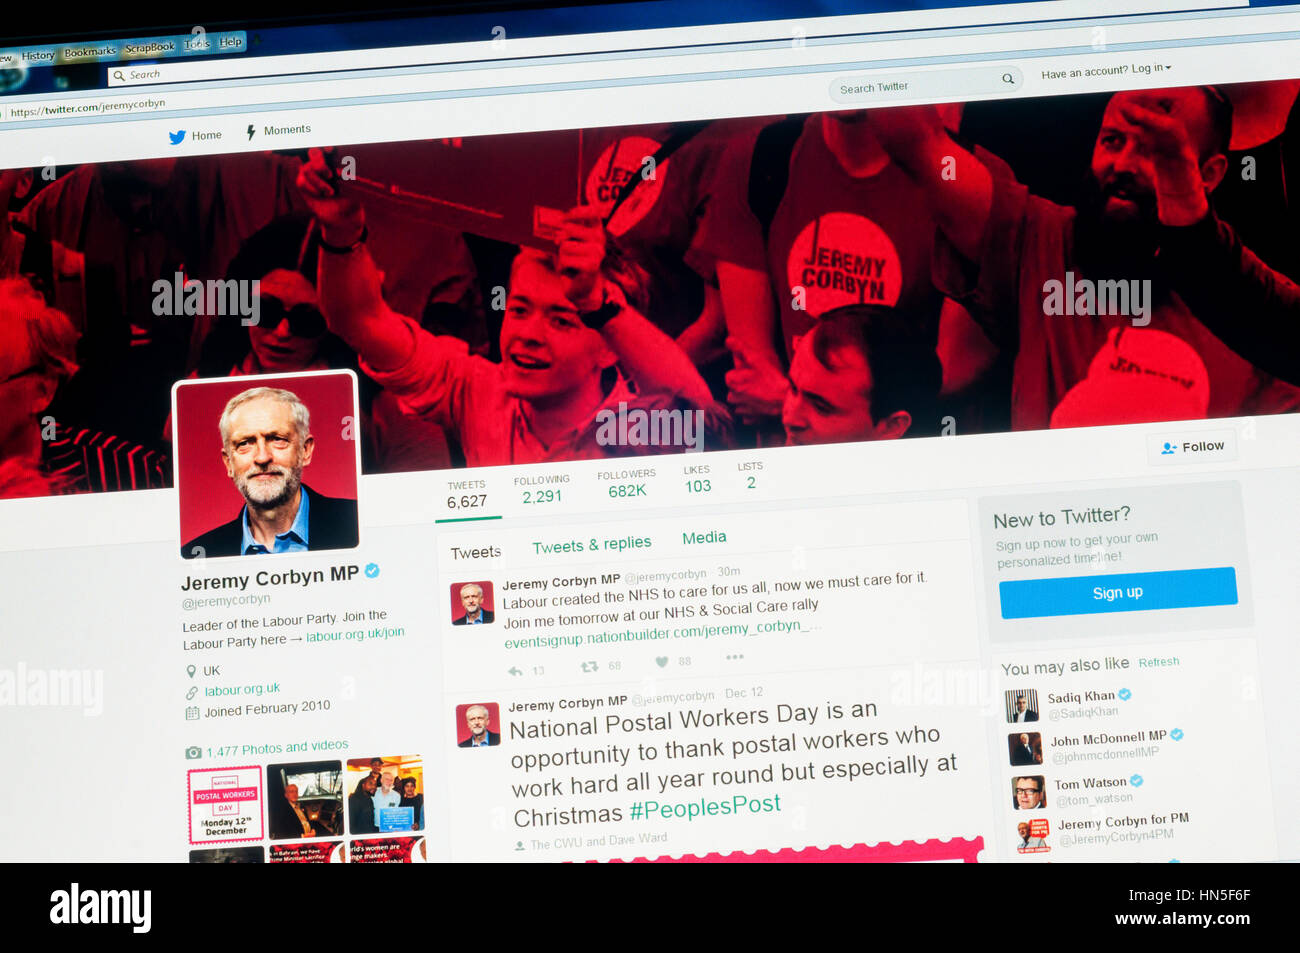 The twitter account of Jeremy Corbyn, the Leader of the Labour Party and Leader of the Opposition. - Stock Image